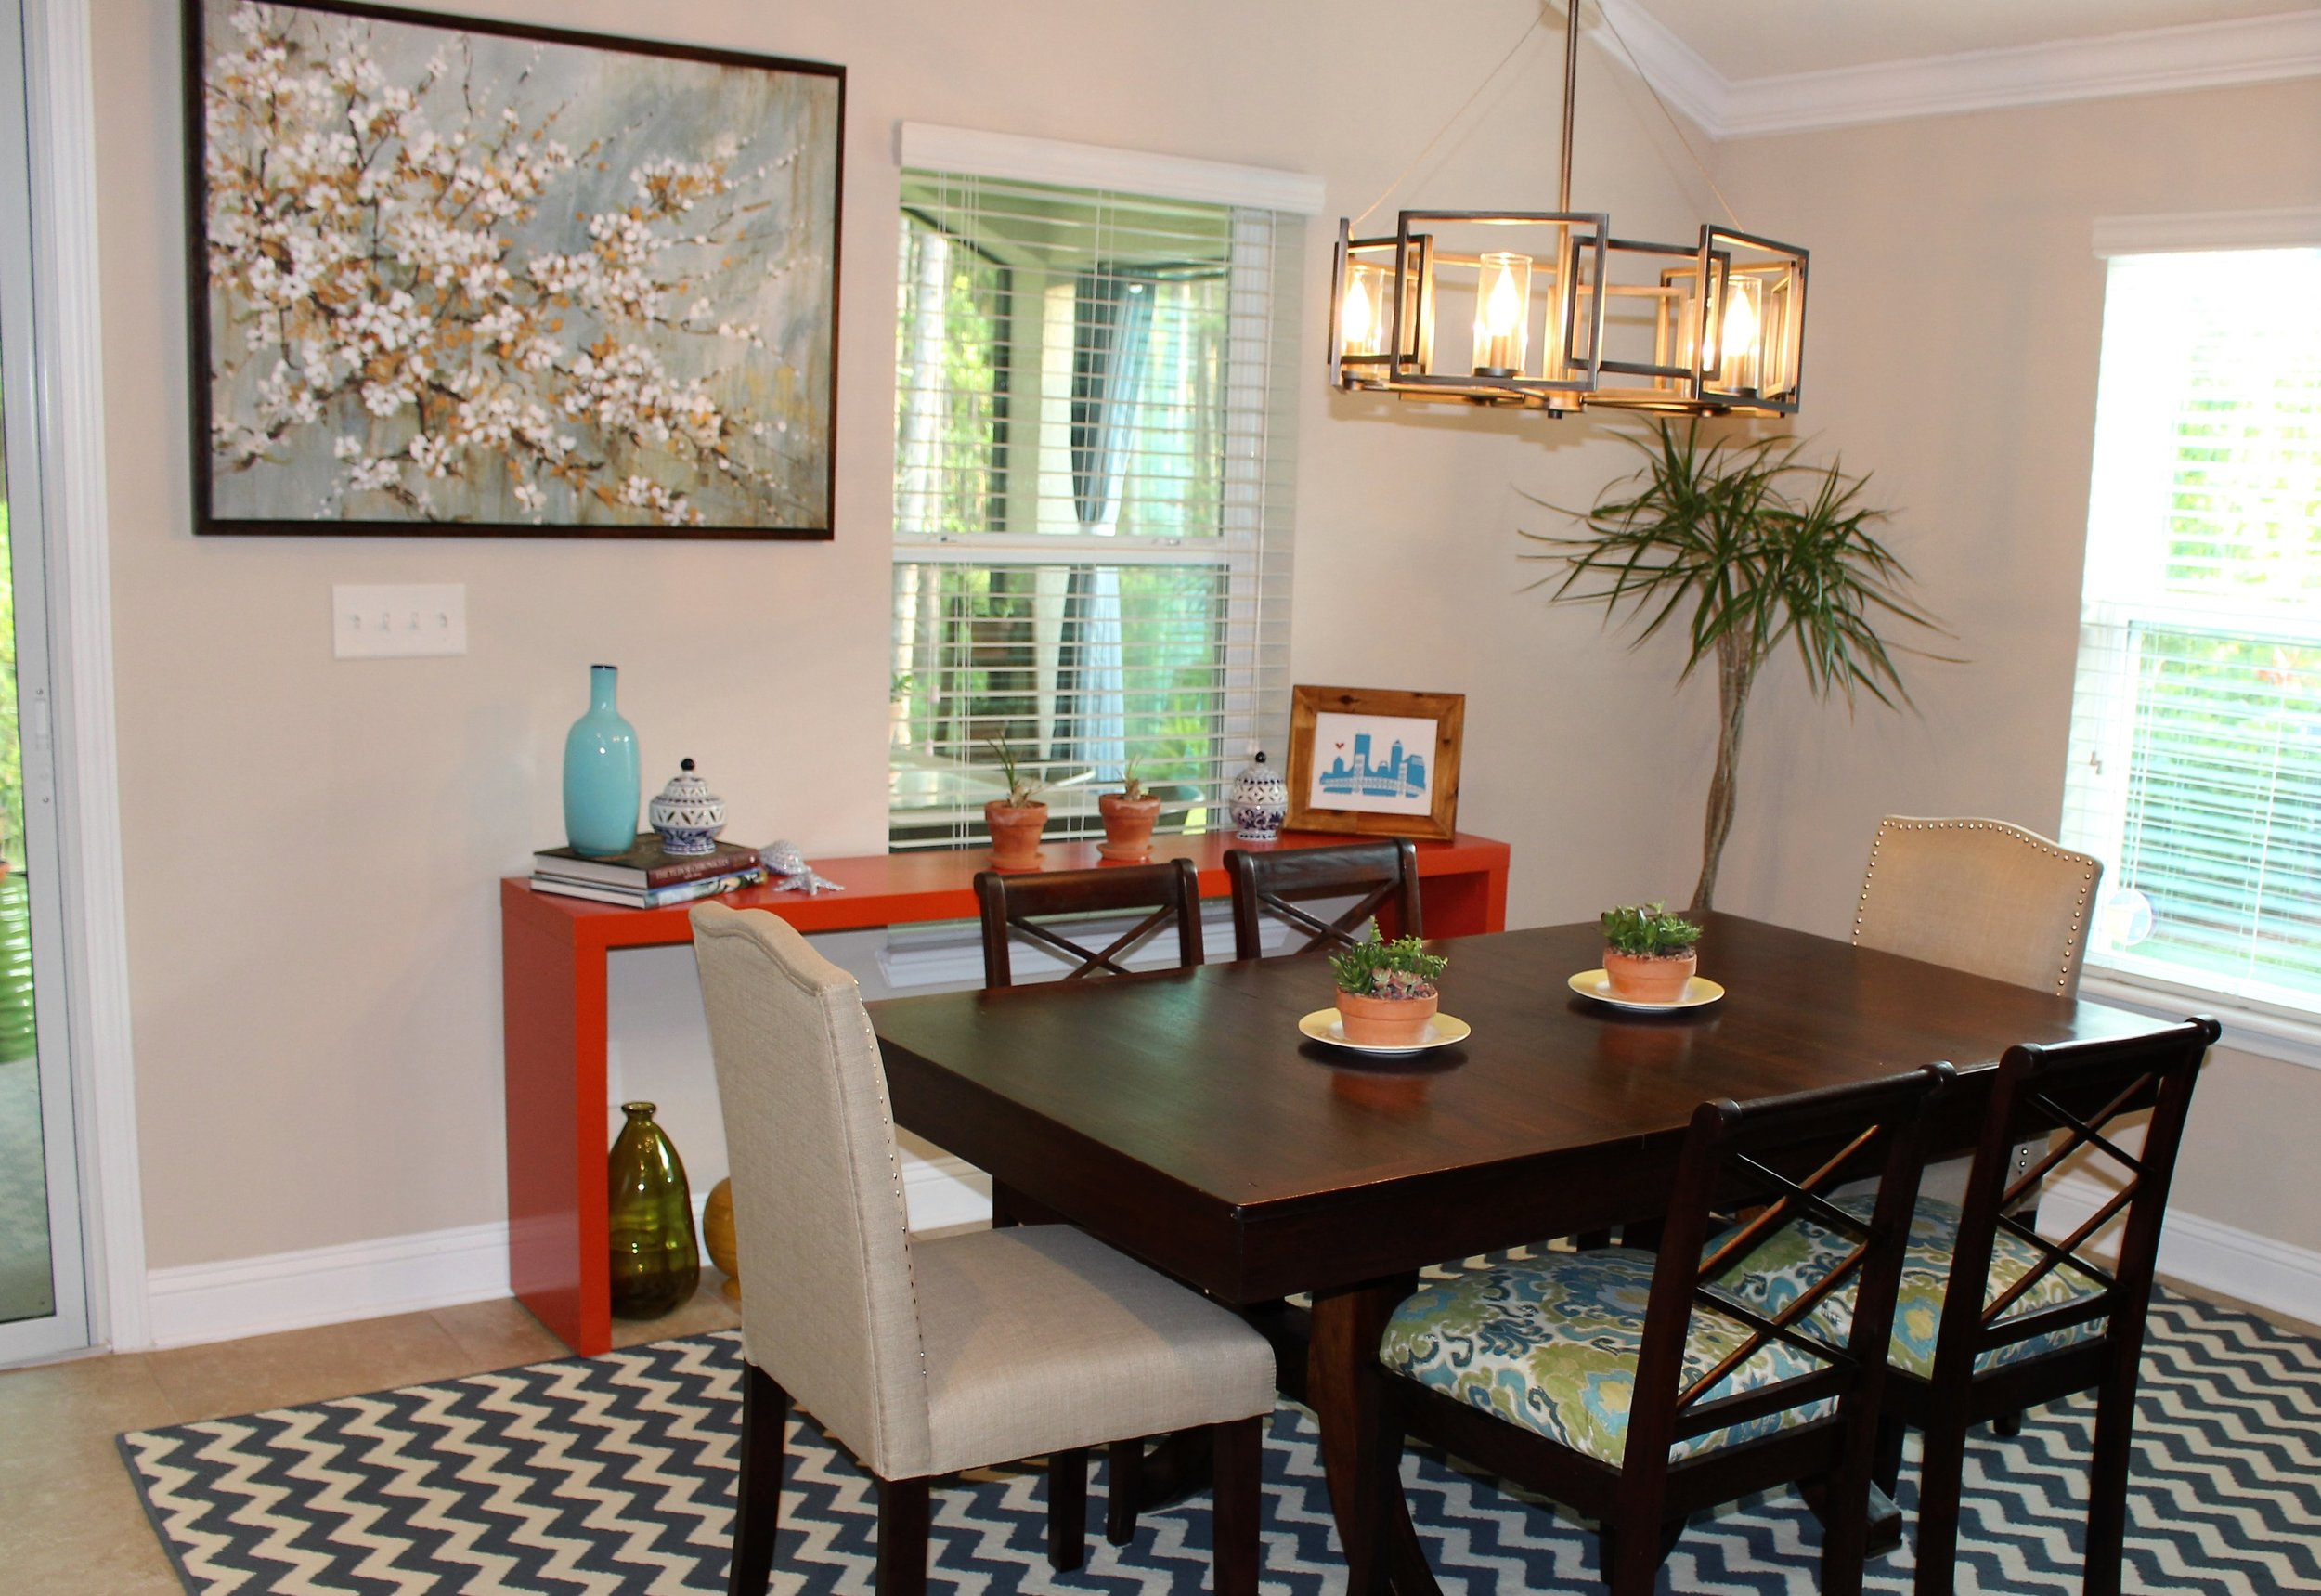 BEFORE - malm desk in dining room